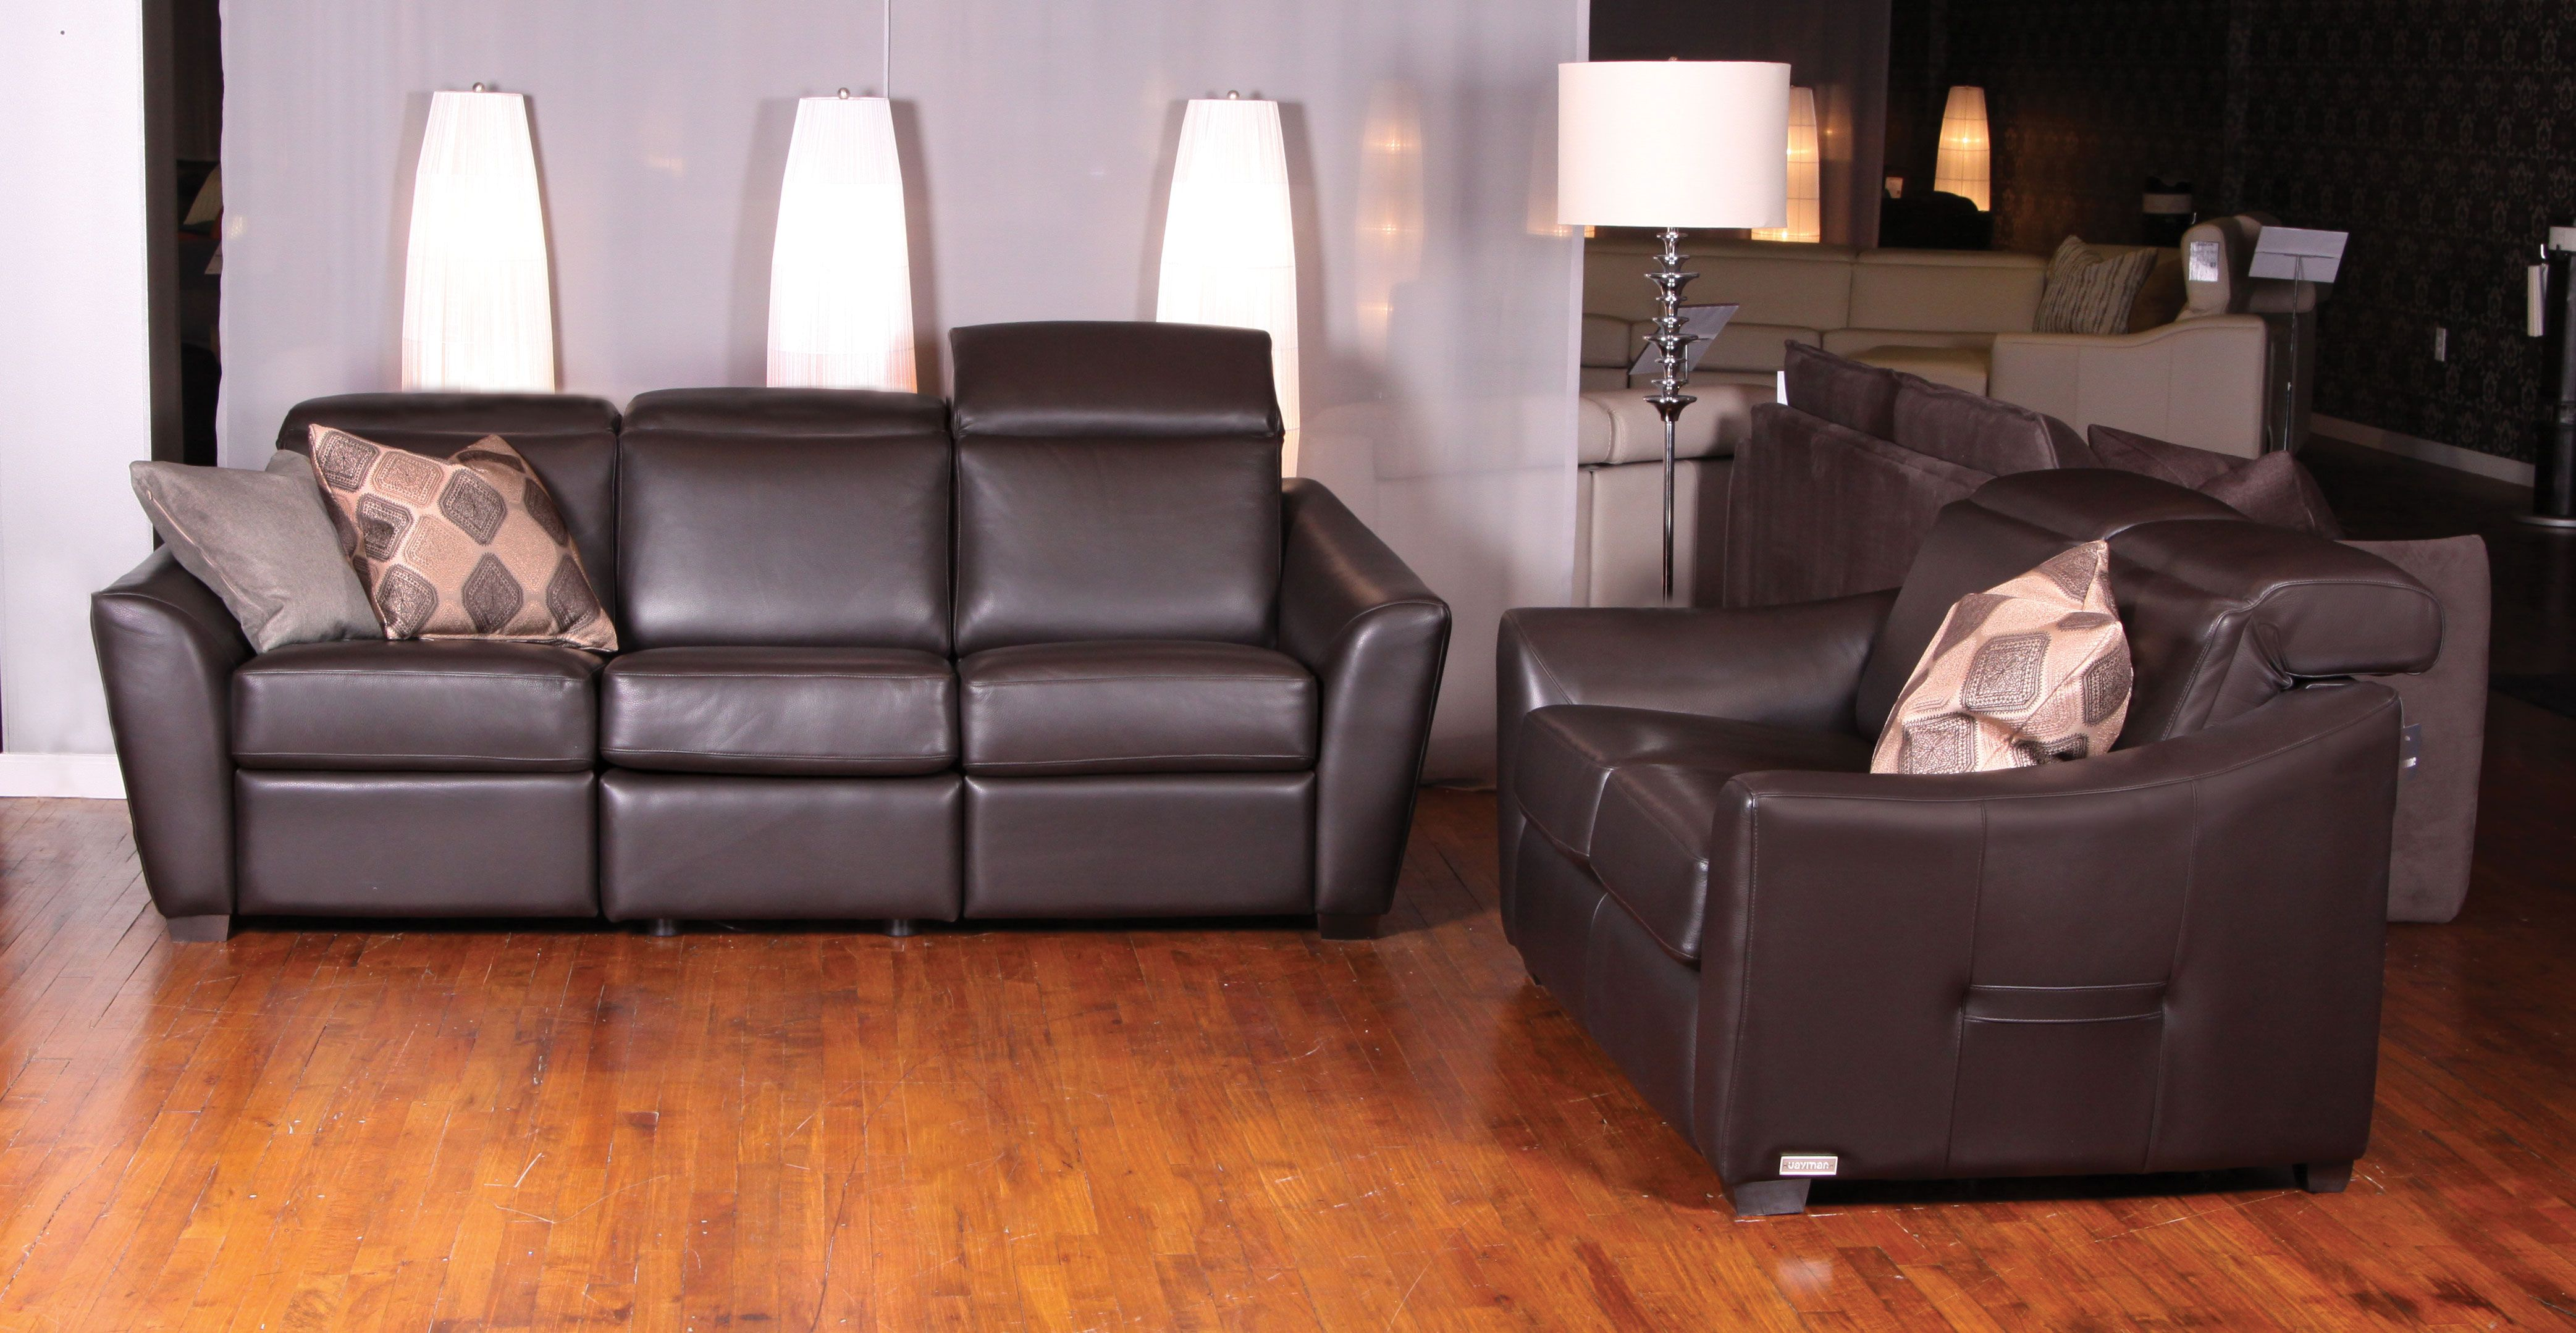 motorized sectional sofa empire sofology julianne leather by jaymar made in canada